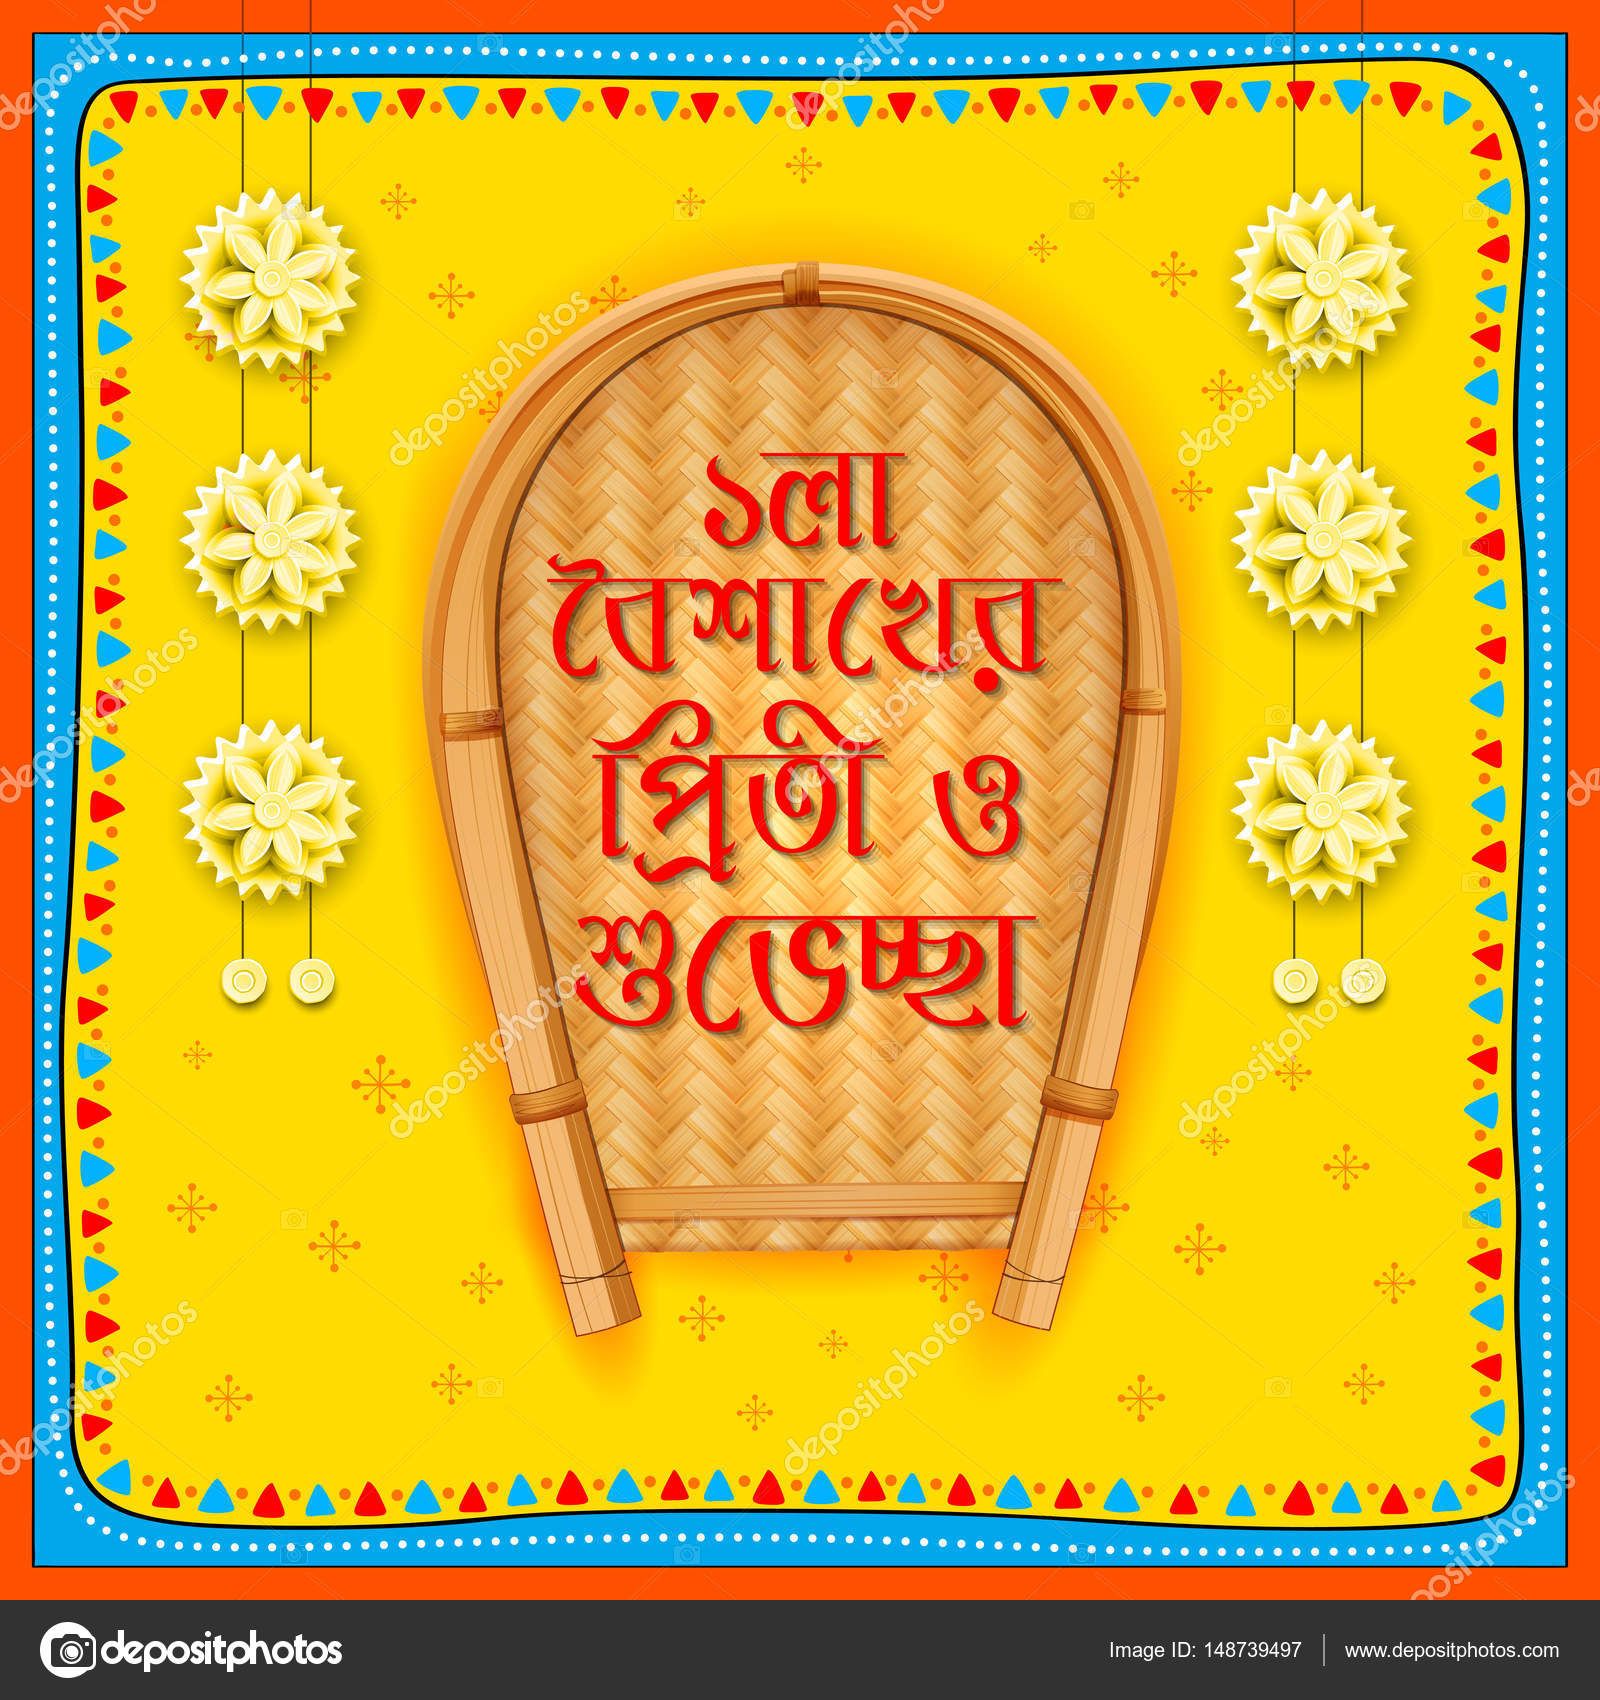 Greeting background with bengali text subho nababarsha priti o greeting background with bengali text subho nababarsha priti o subhecha meaning love and wishes for happy stopboris Choice Image